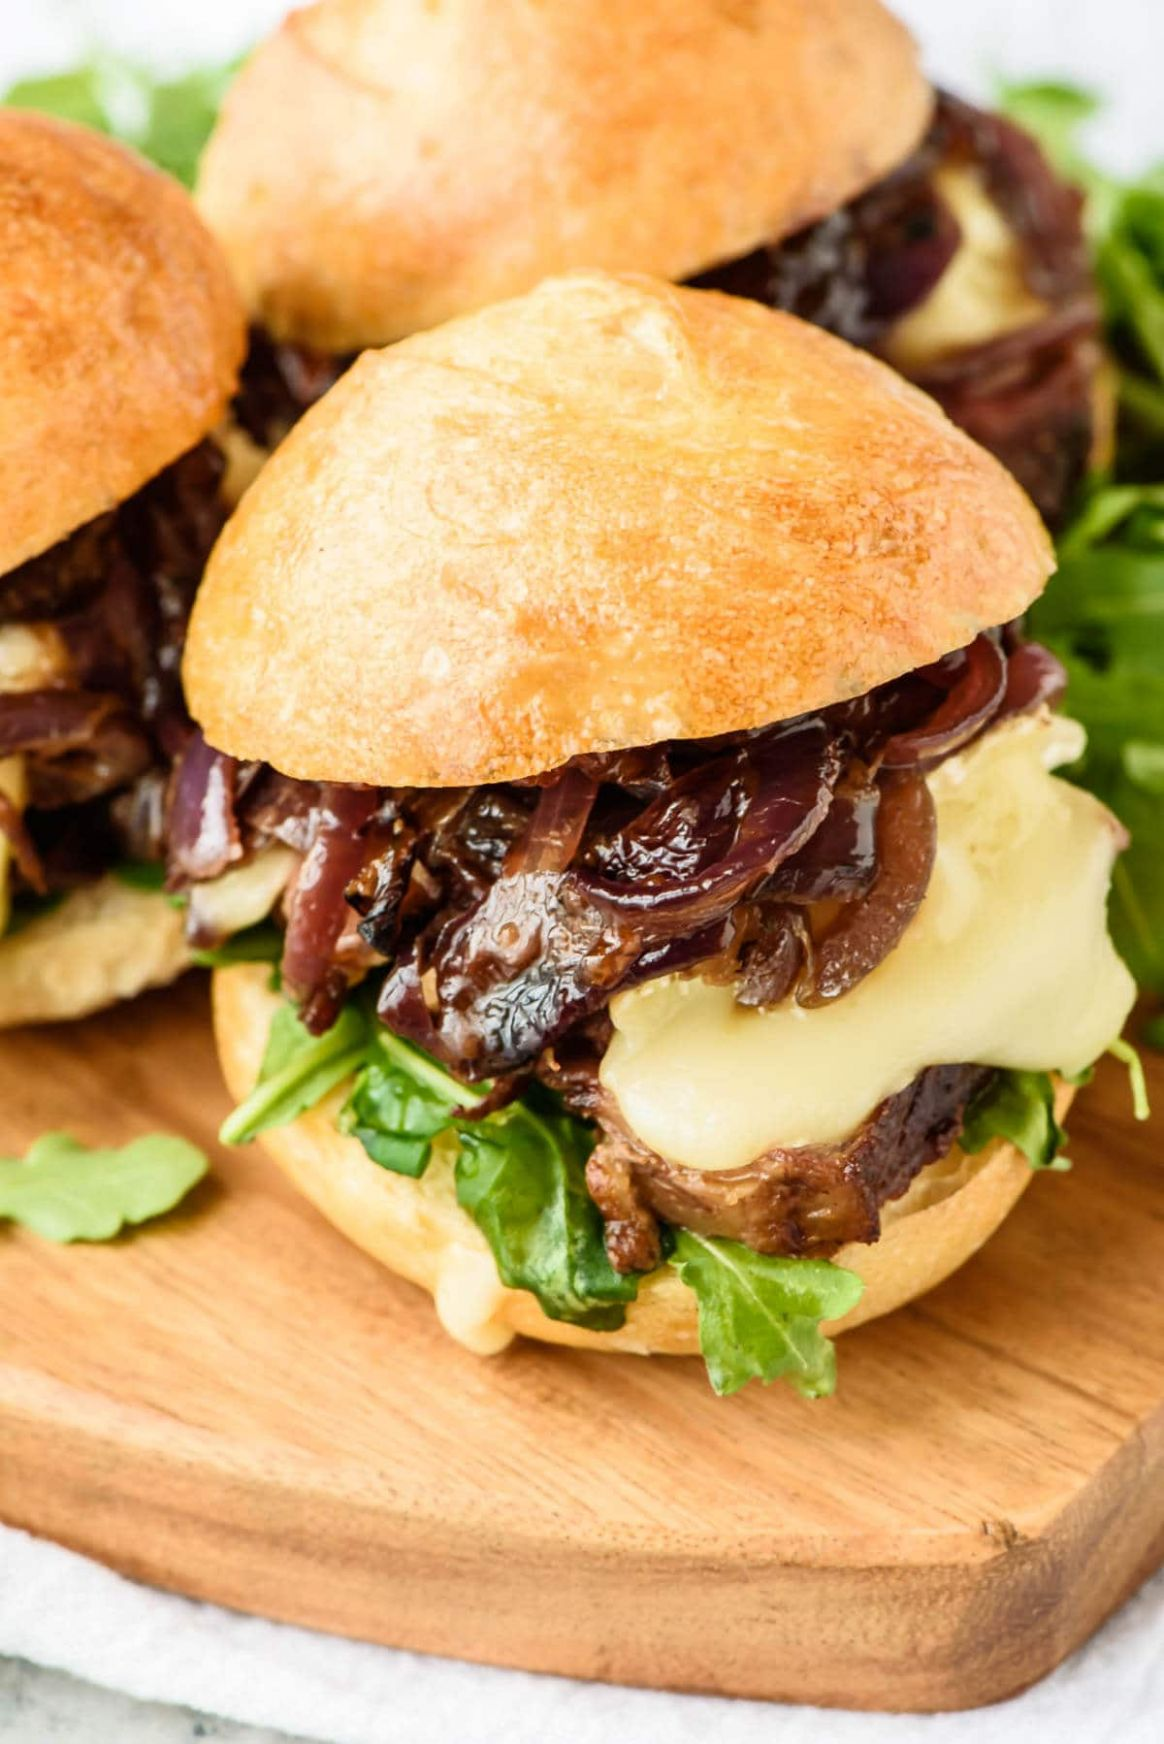 Mini Steak Sandwich with Brie, Caramelized Onions, and Fig Jam - Recipes With Sandwich Steak